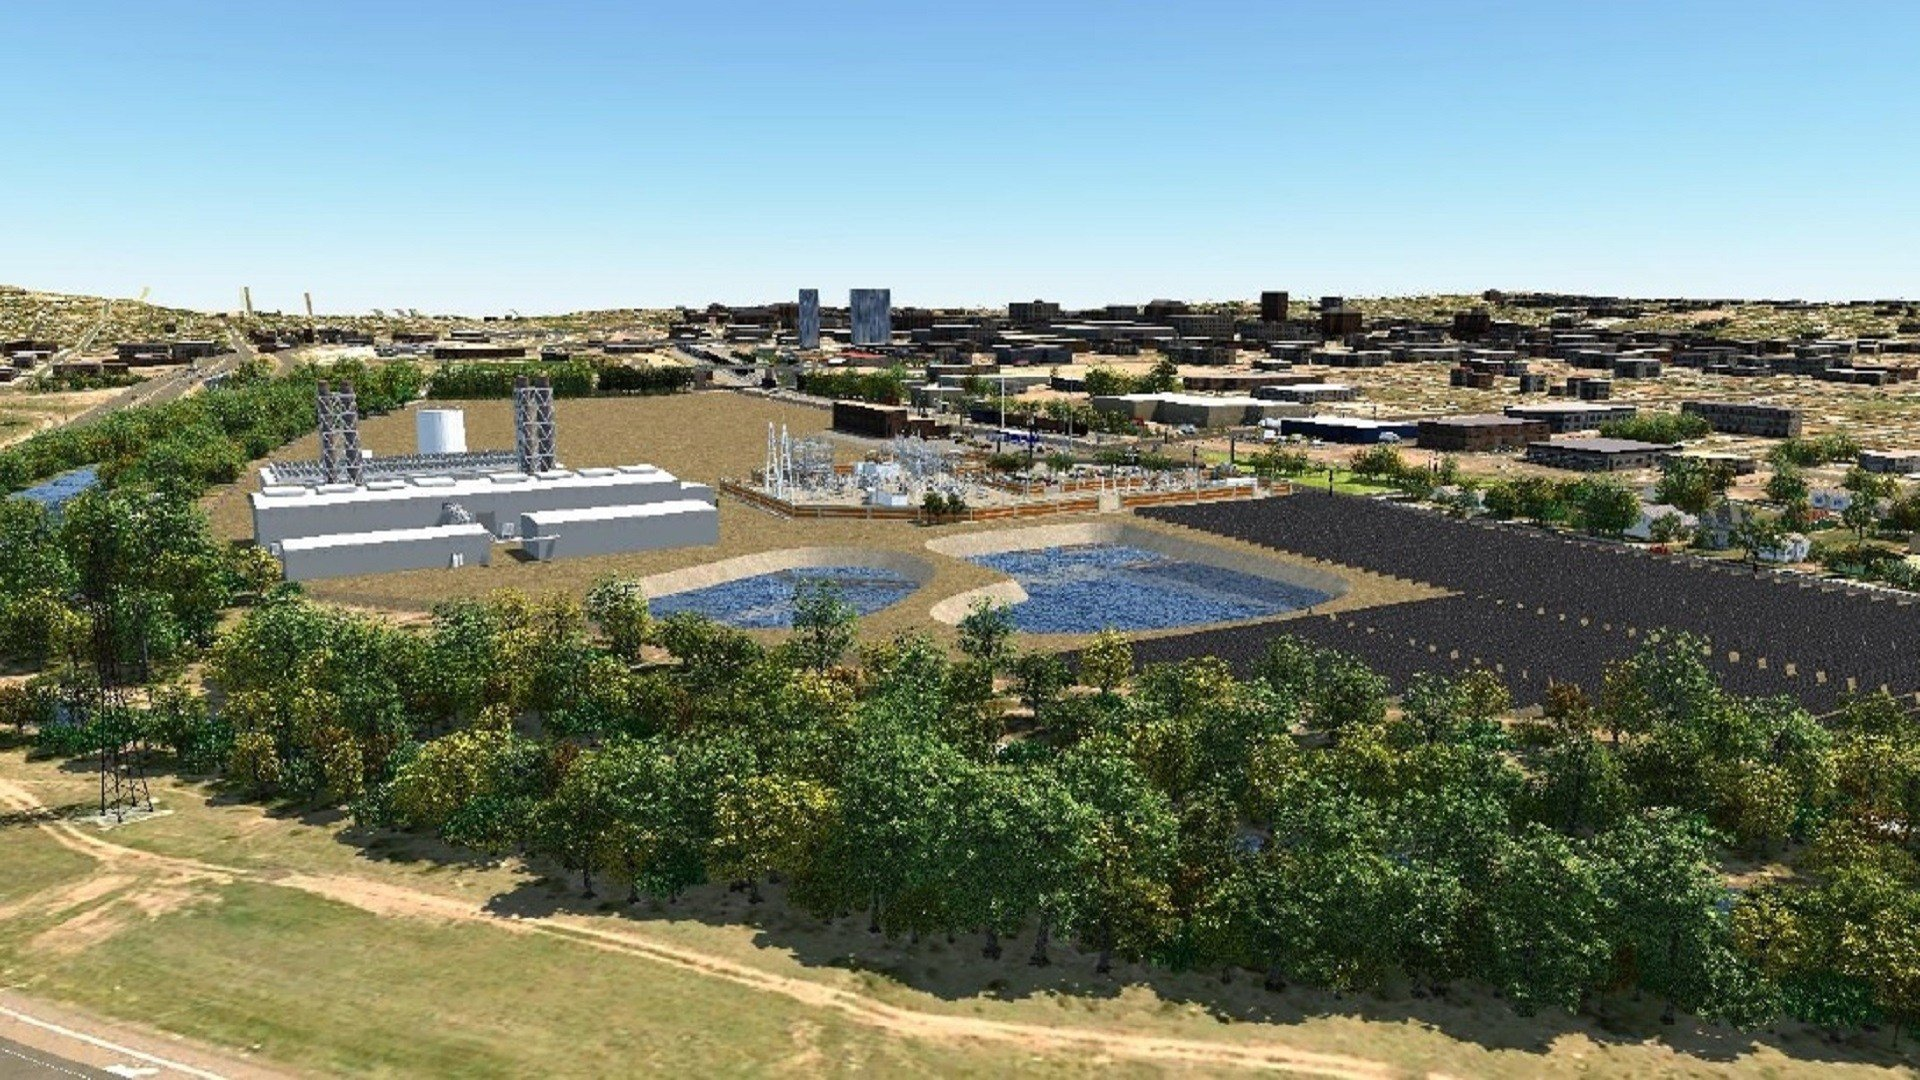 An artists rendering of a new solar farm and natural gas power plant at the site of the Martin Drake coal power plant